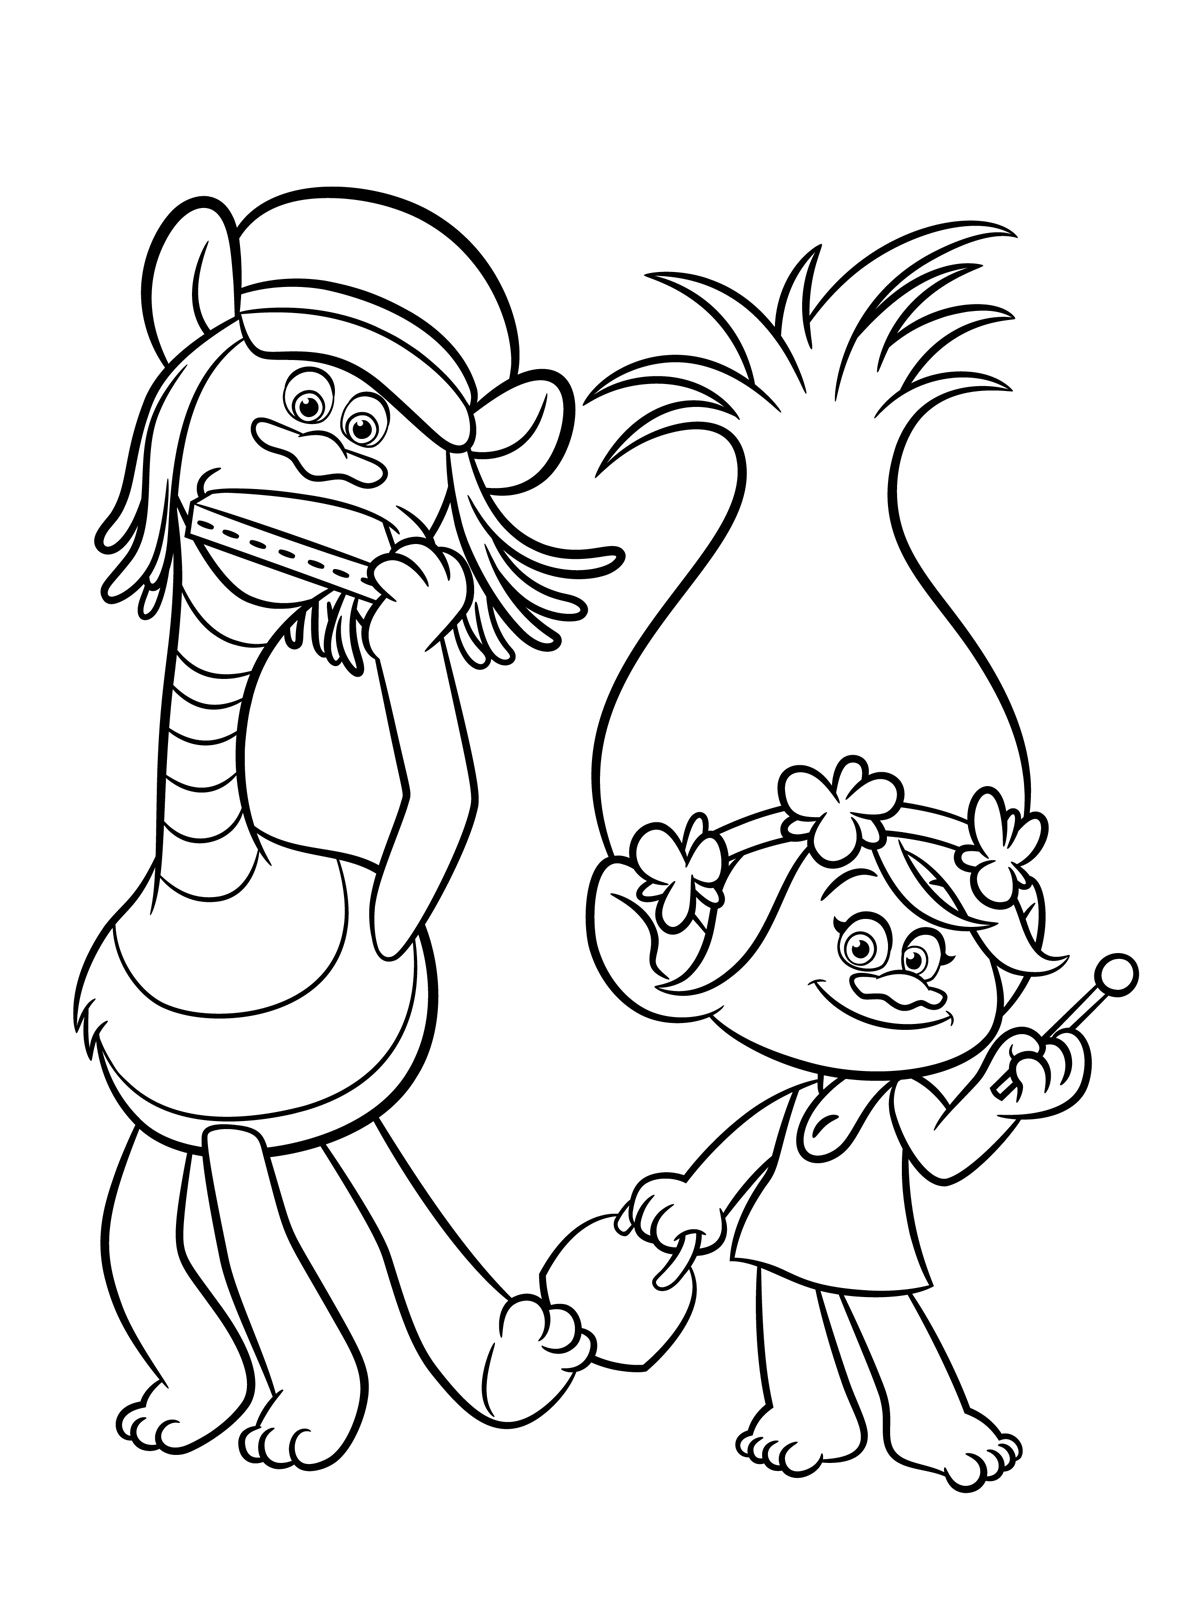 childrens colouring pictures free printable goofy coloring pages for kids pictures childrens colouring